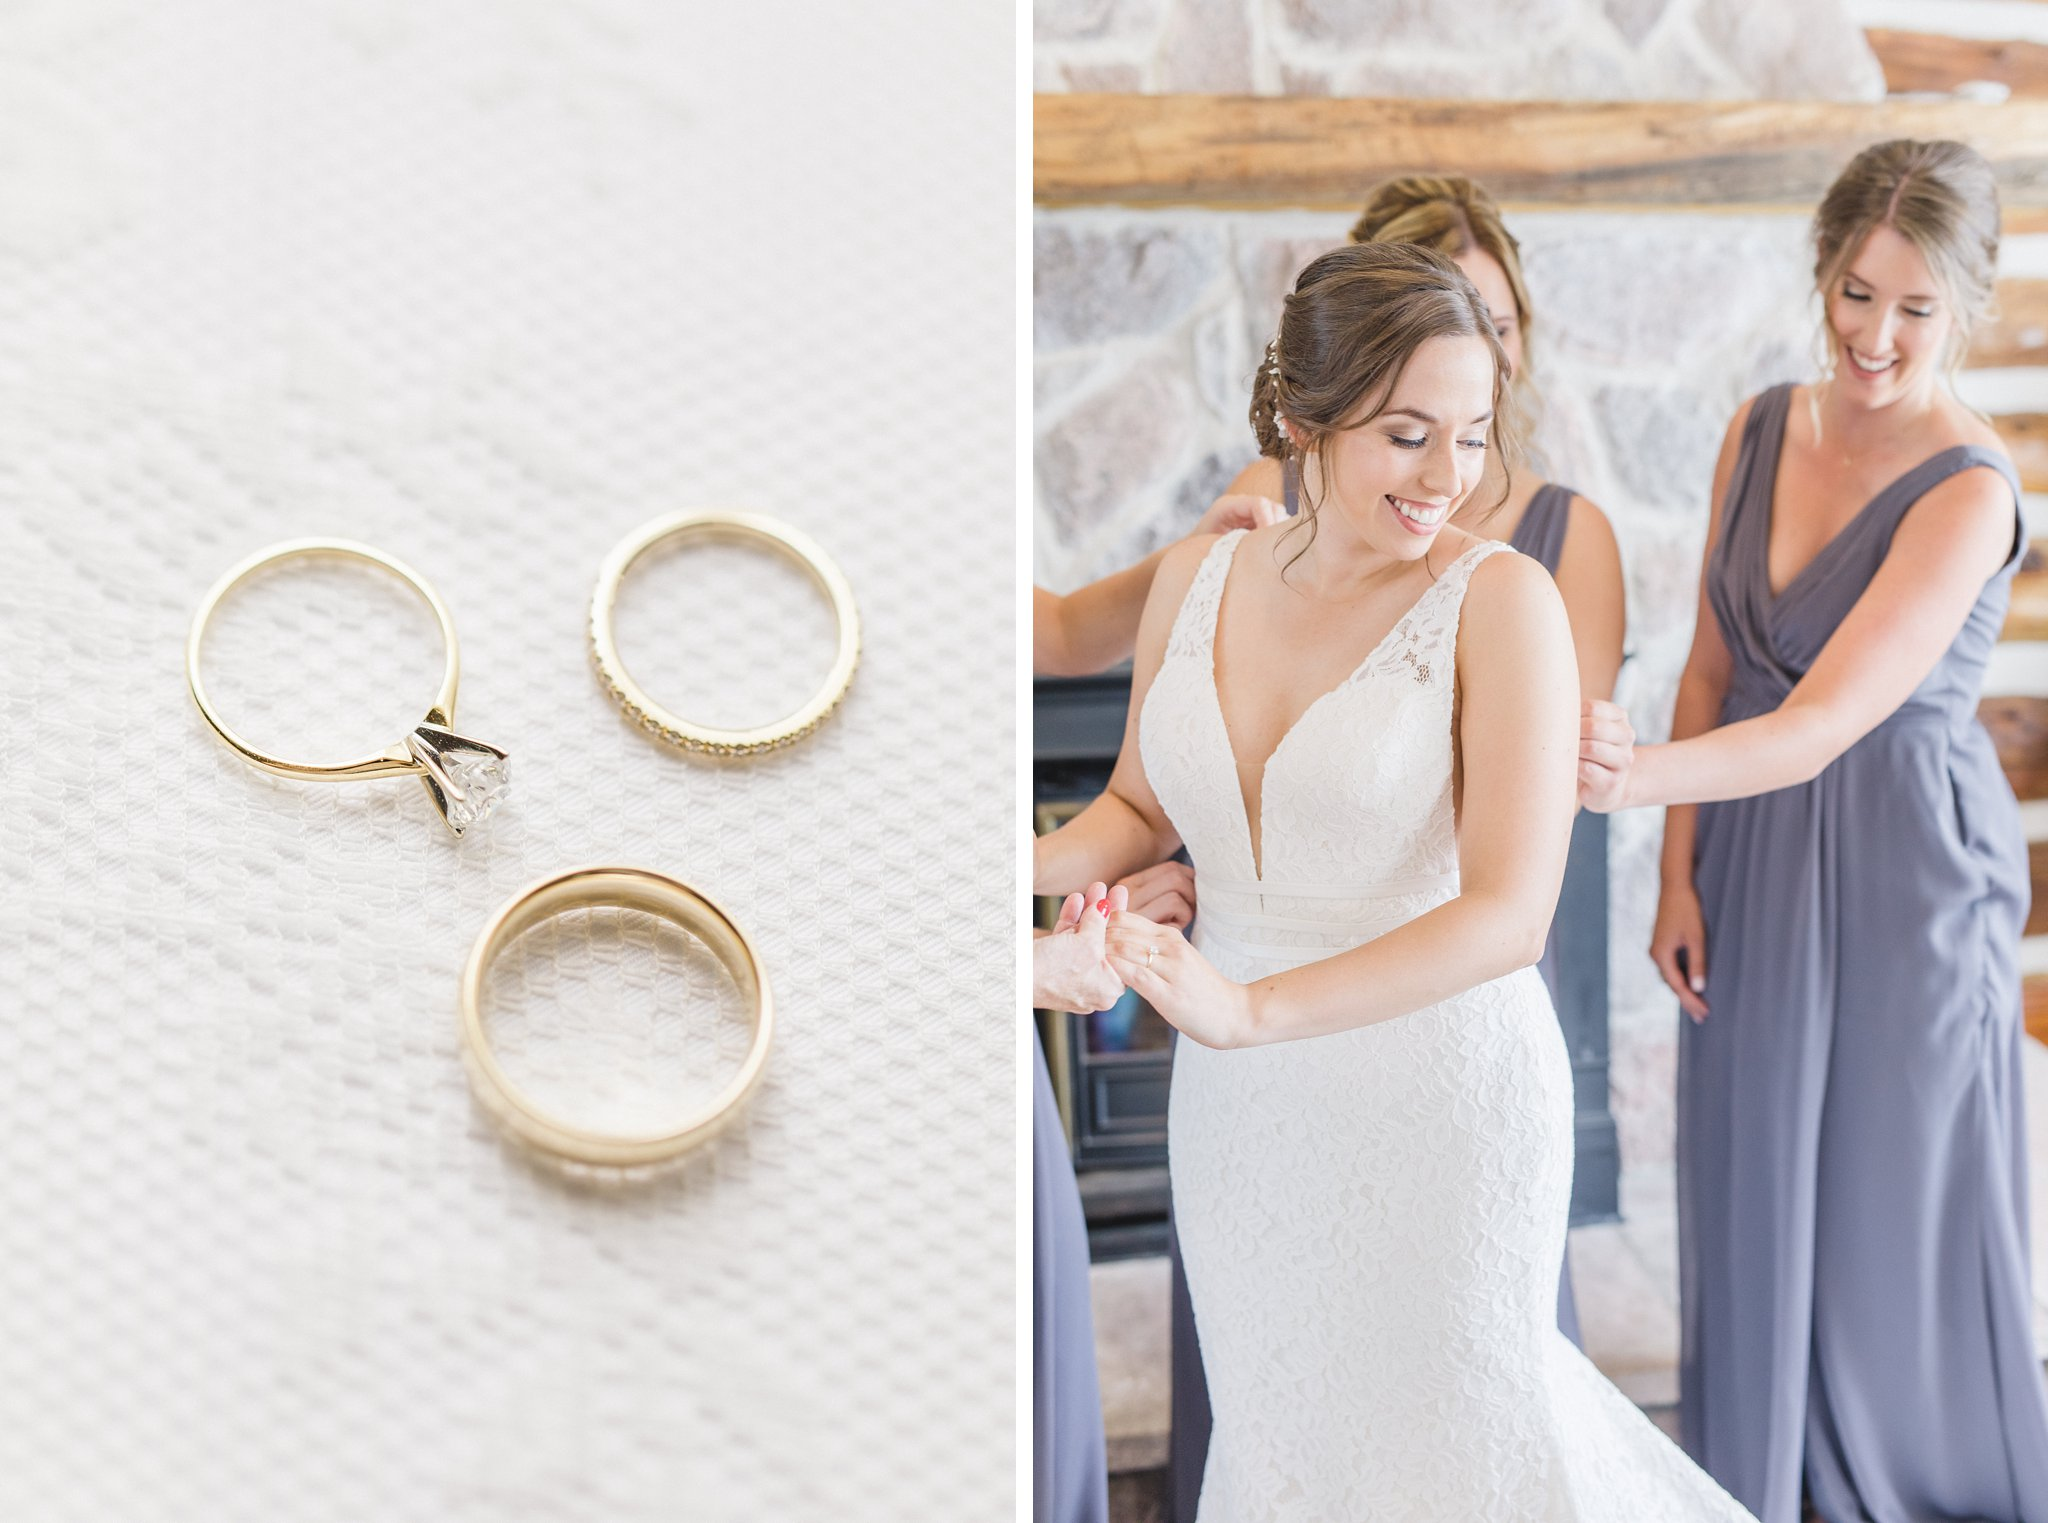 Modern wedding dress with illusion sides under arm married at Stonefields, Amy Pinder Photography